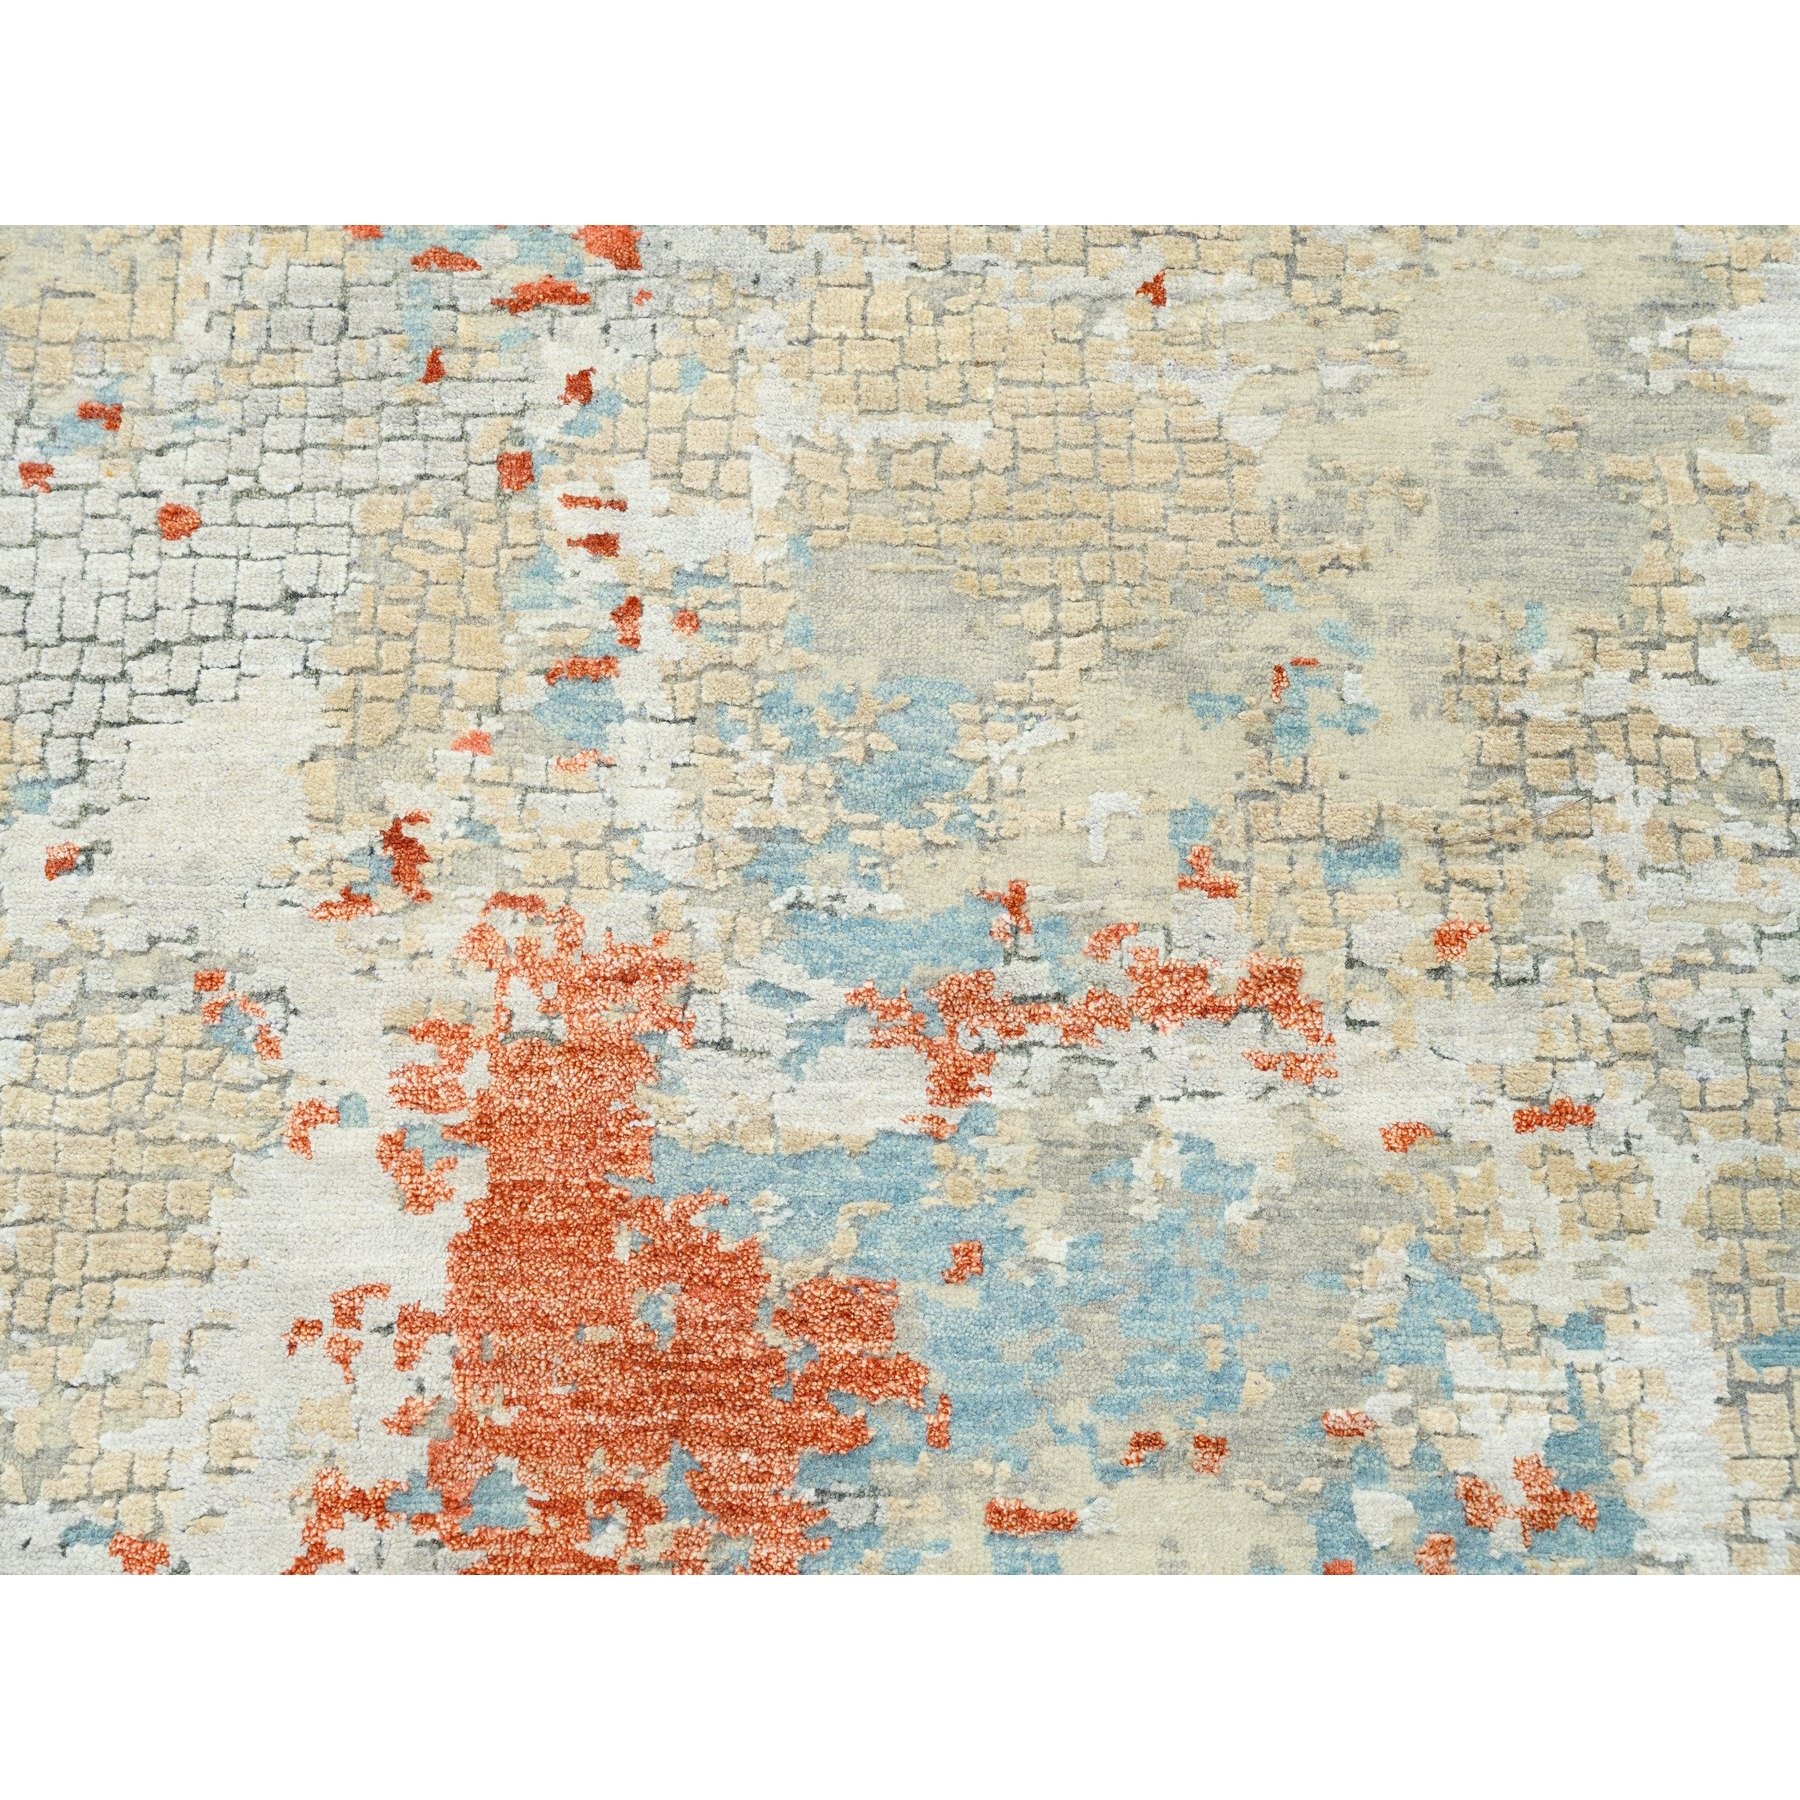 """9'9""""x9'10"""" Wool and Silk Abstract with Fire Mosaic Hand Knotted Square Rug"""